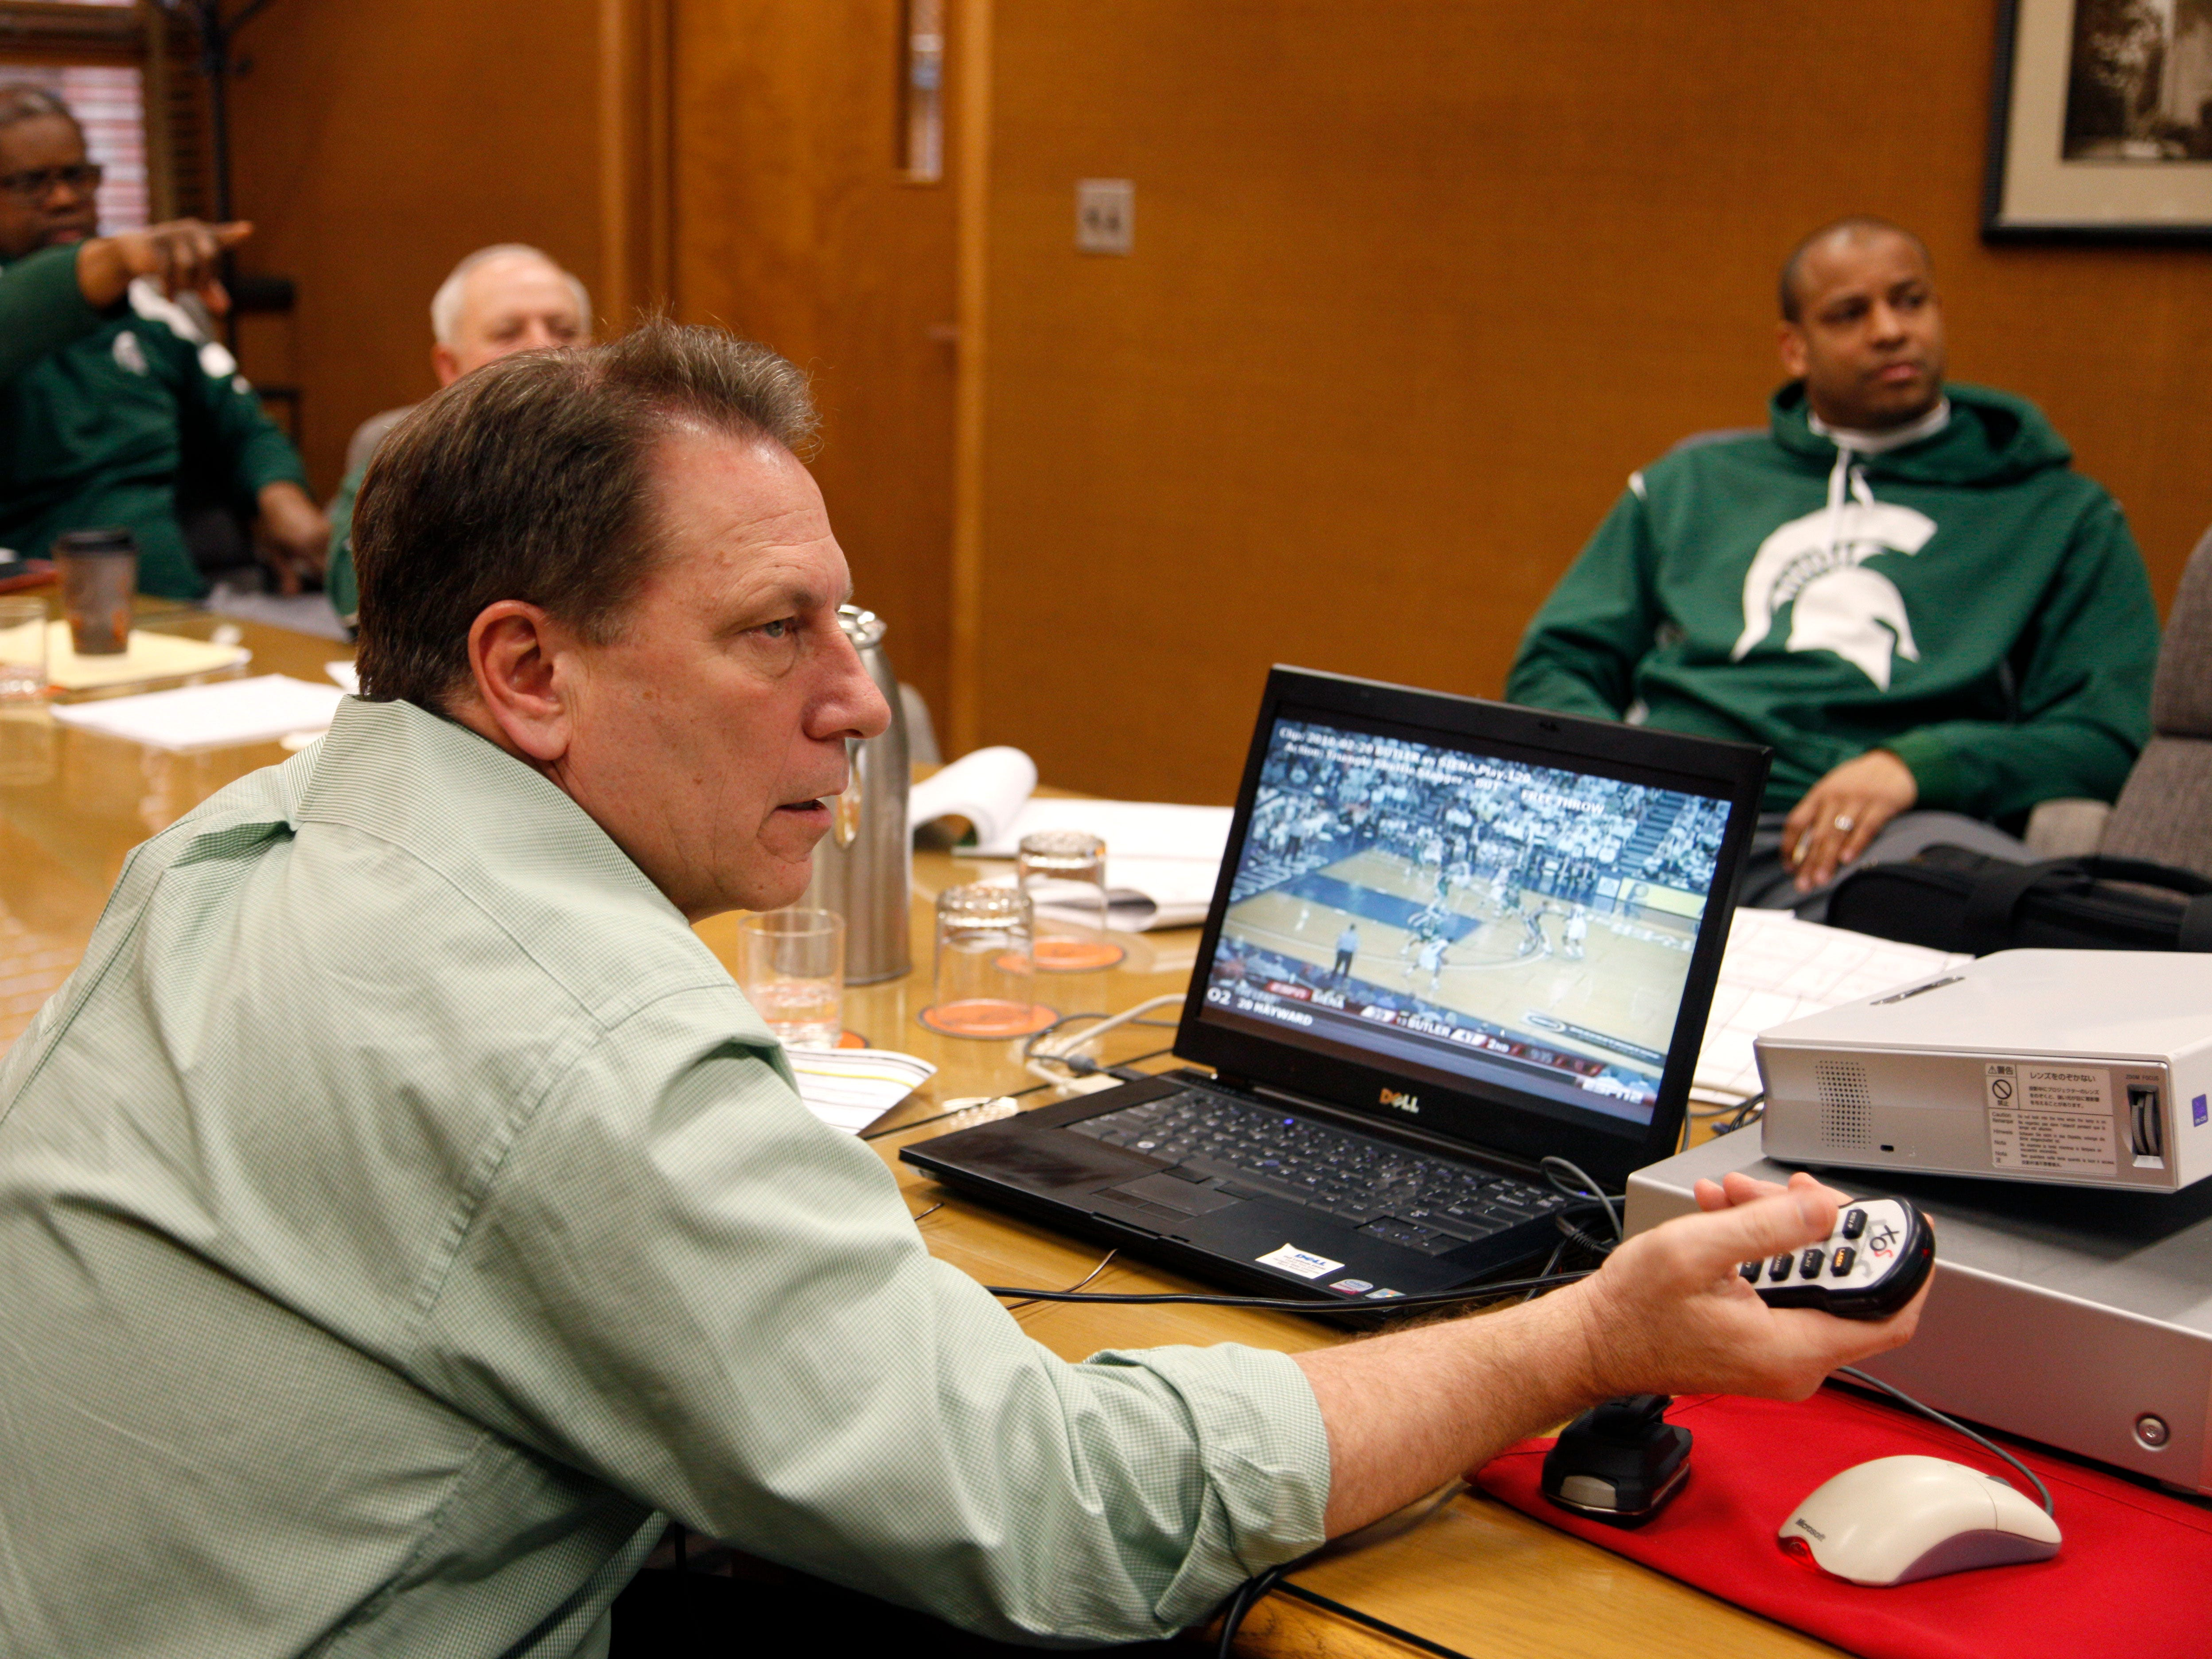 Michigan State coach Tom Izzo, foreground, and staff analyze video of Final Four opponent Butler, Tuesday, March 30, 2010, in East Lansing, Mich. Izzo is preparing for his sixth Final Four in 12 years. From left are assistant coach Mike Garland, assistant video coordinator Doug Herner, and associate head coach Mark Montgomery.